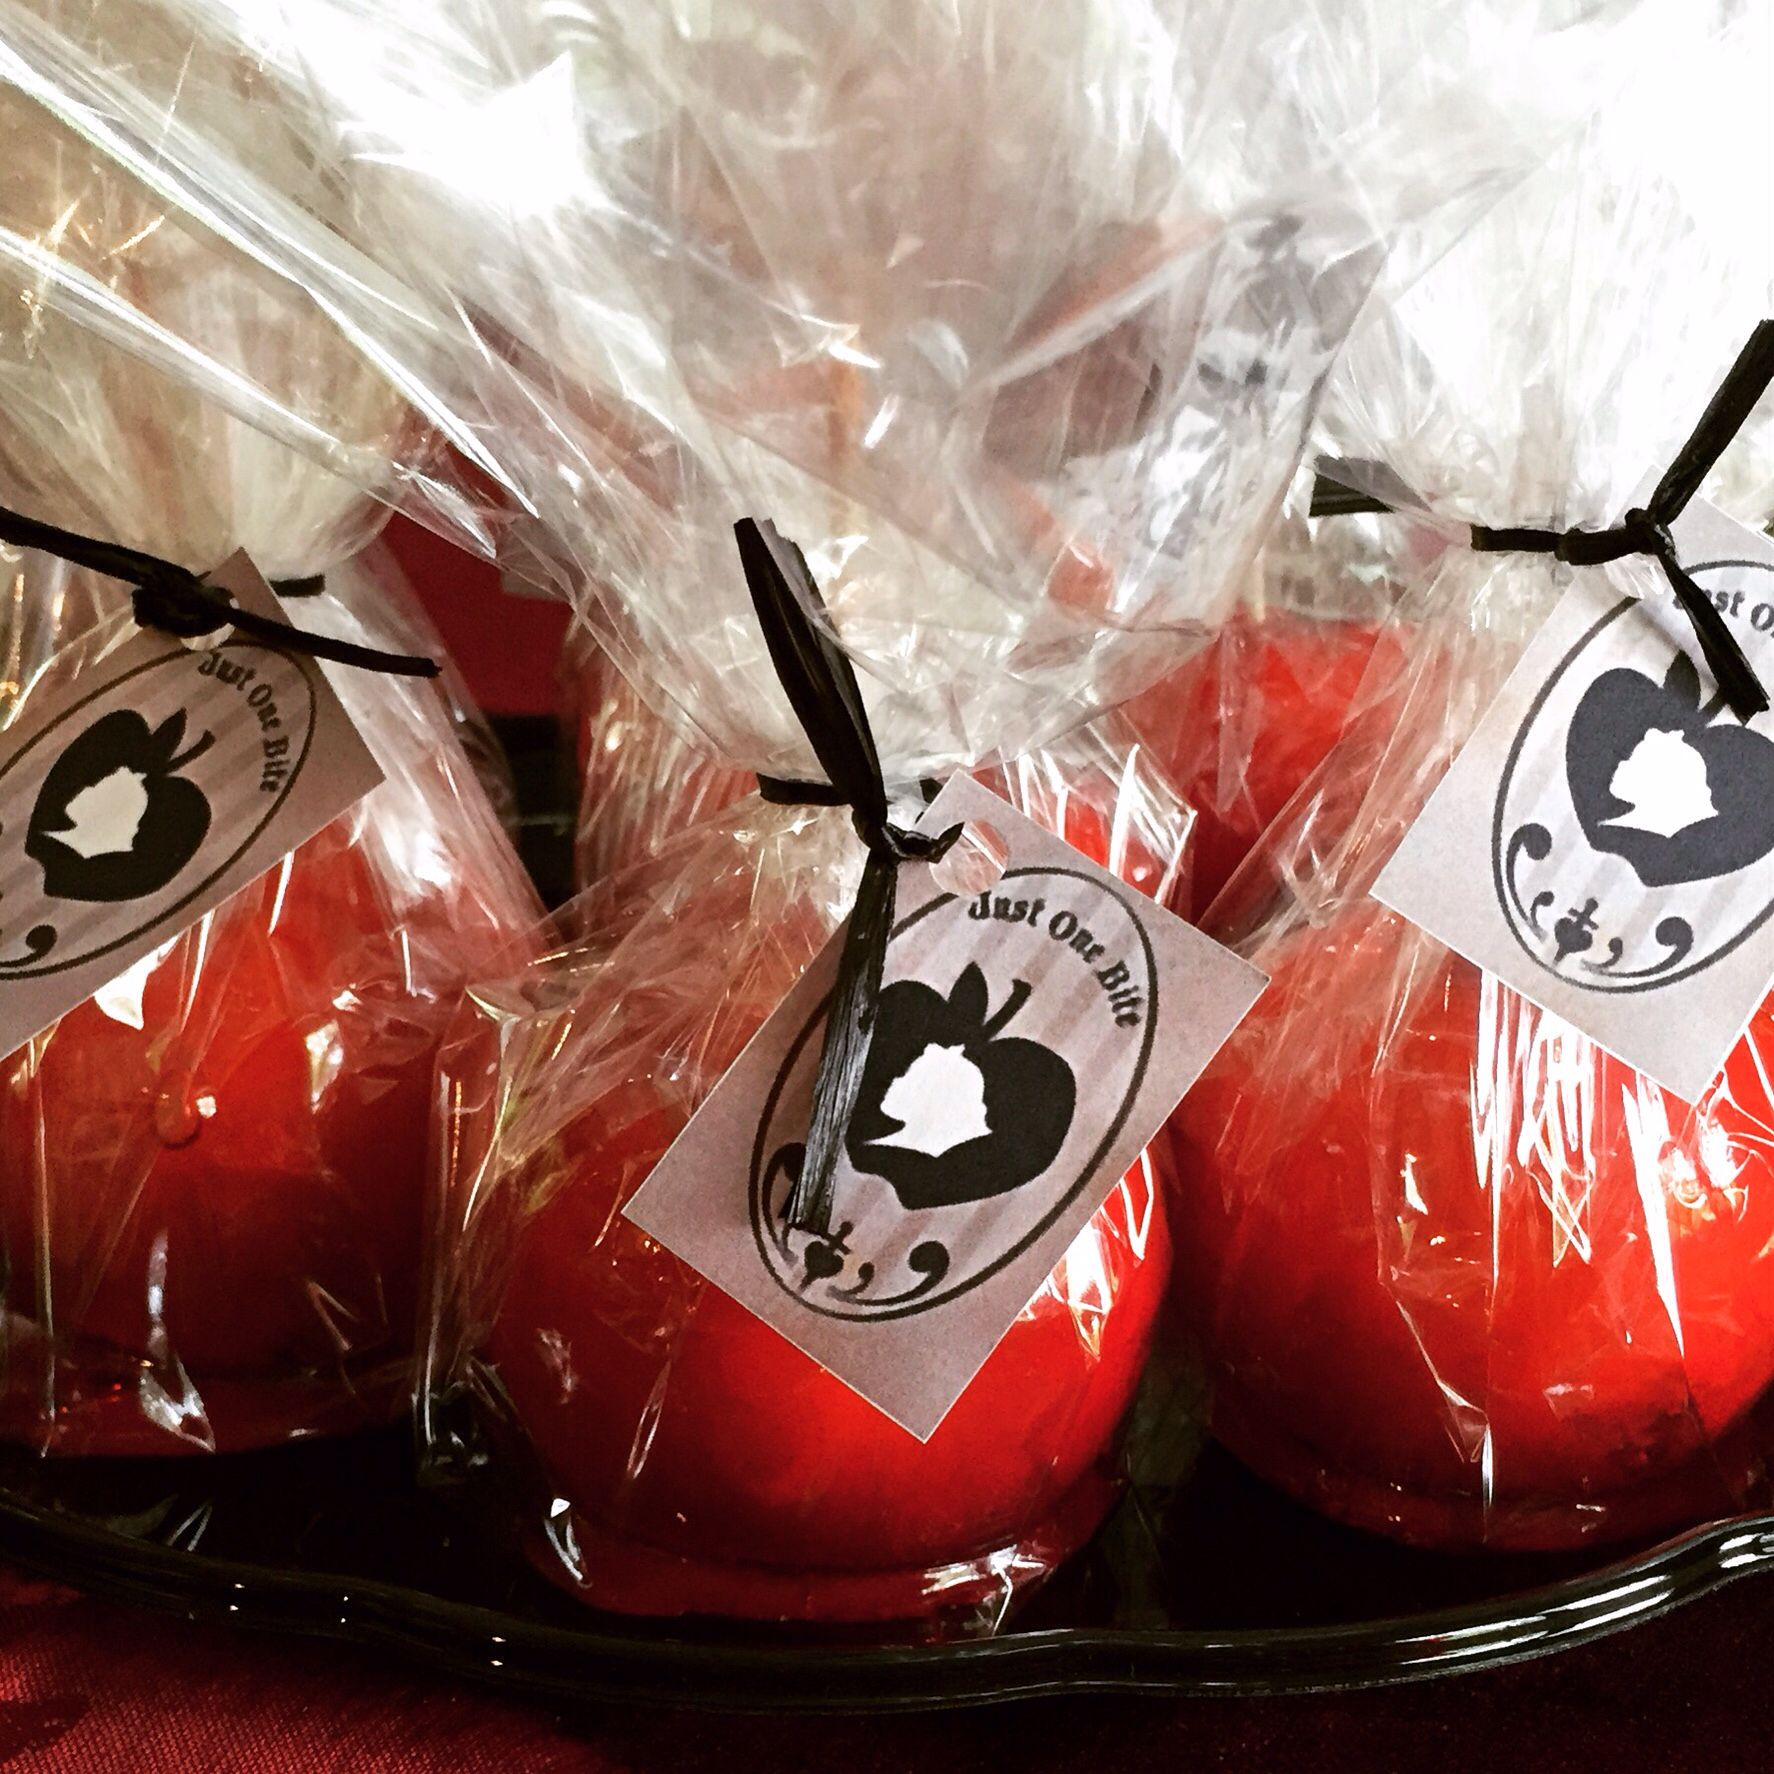 Regina S Poison Apples Candy Apple Party Favors For Once Upon A Time Birthday Party Theme Ouat